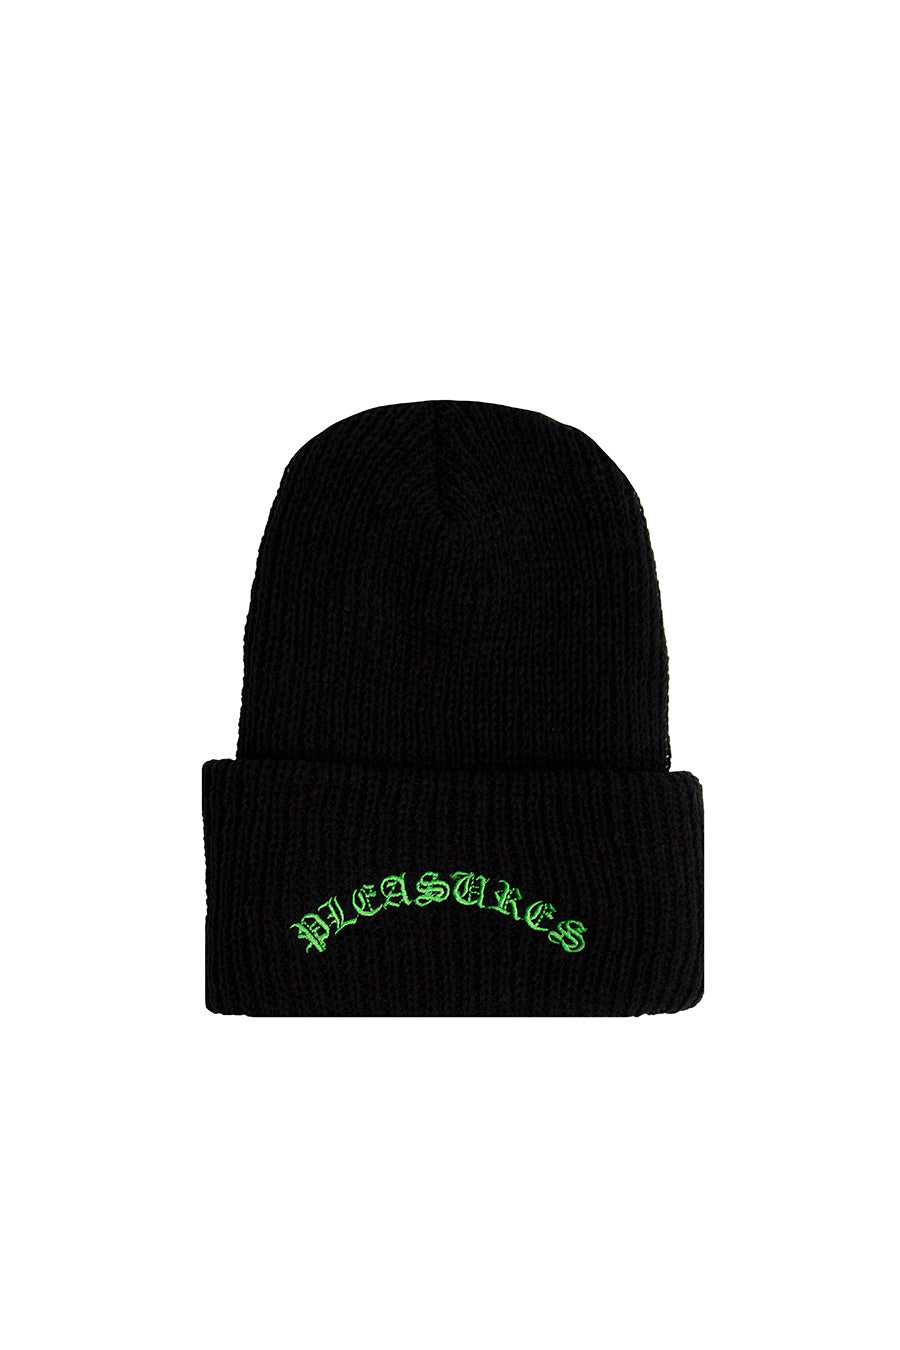 Pleasures - Black Ole E Beanie | 1032 SPACE